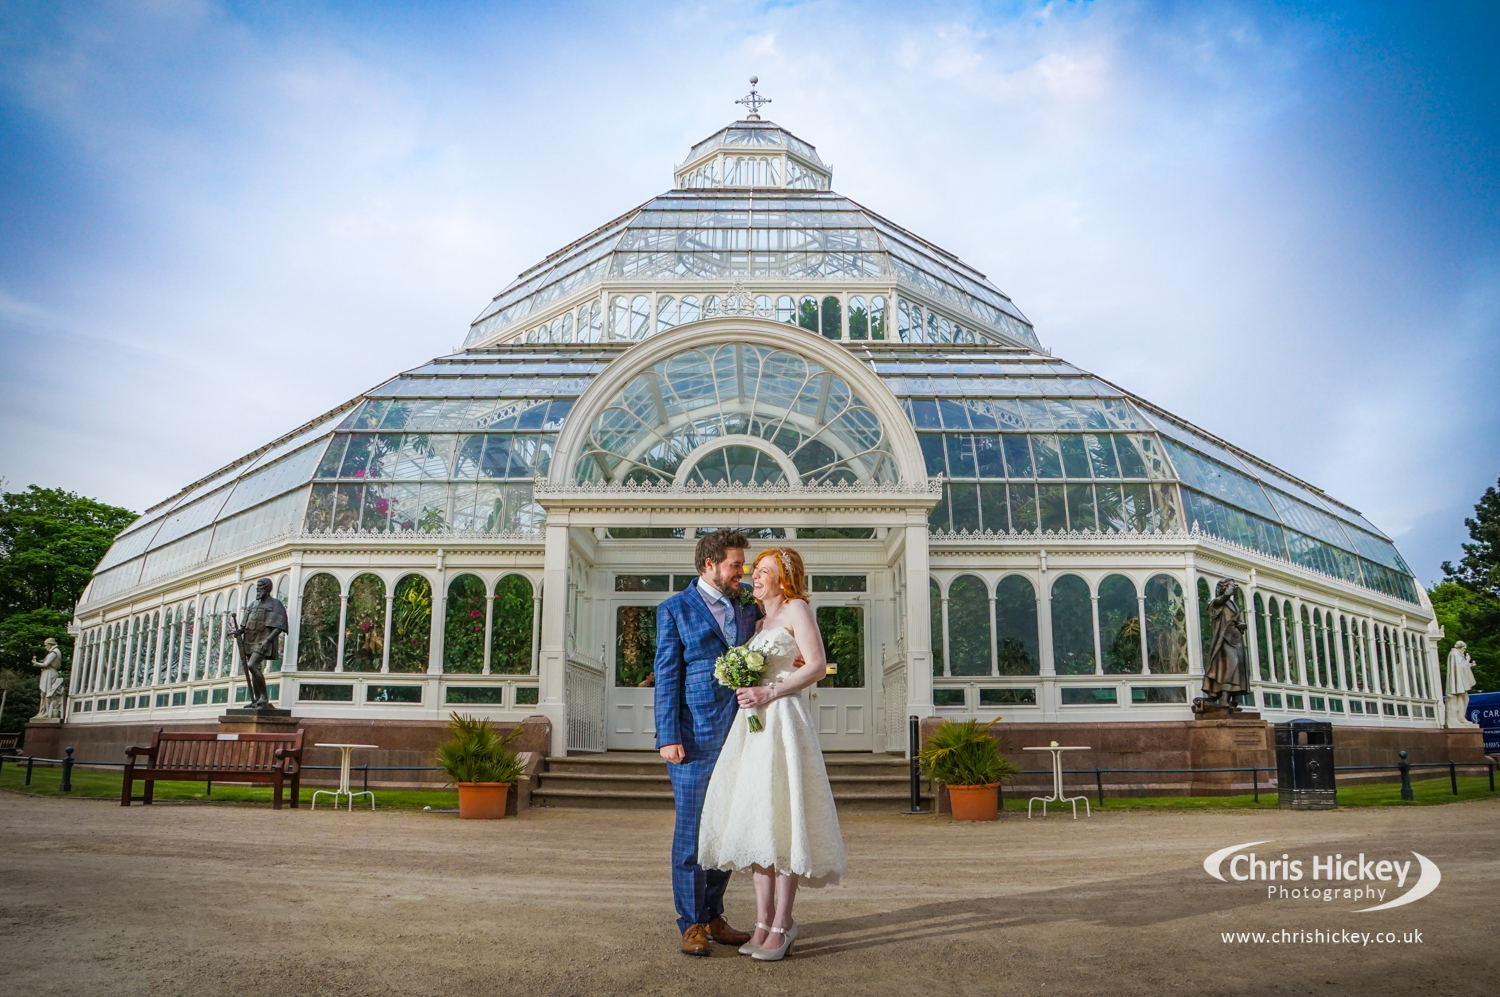 Wedding at The Palm House, Sefton Park Wedding Photography